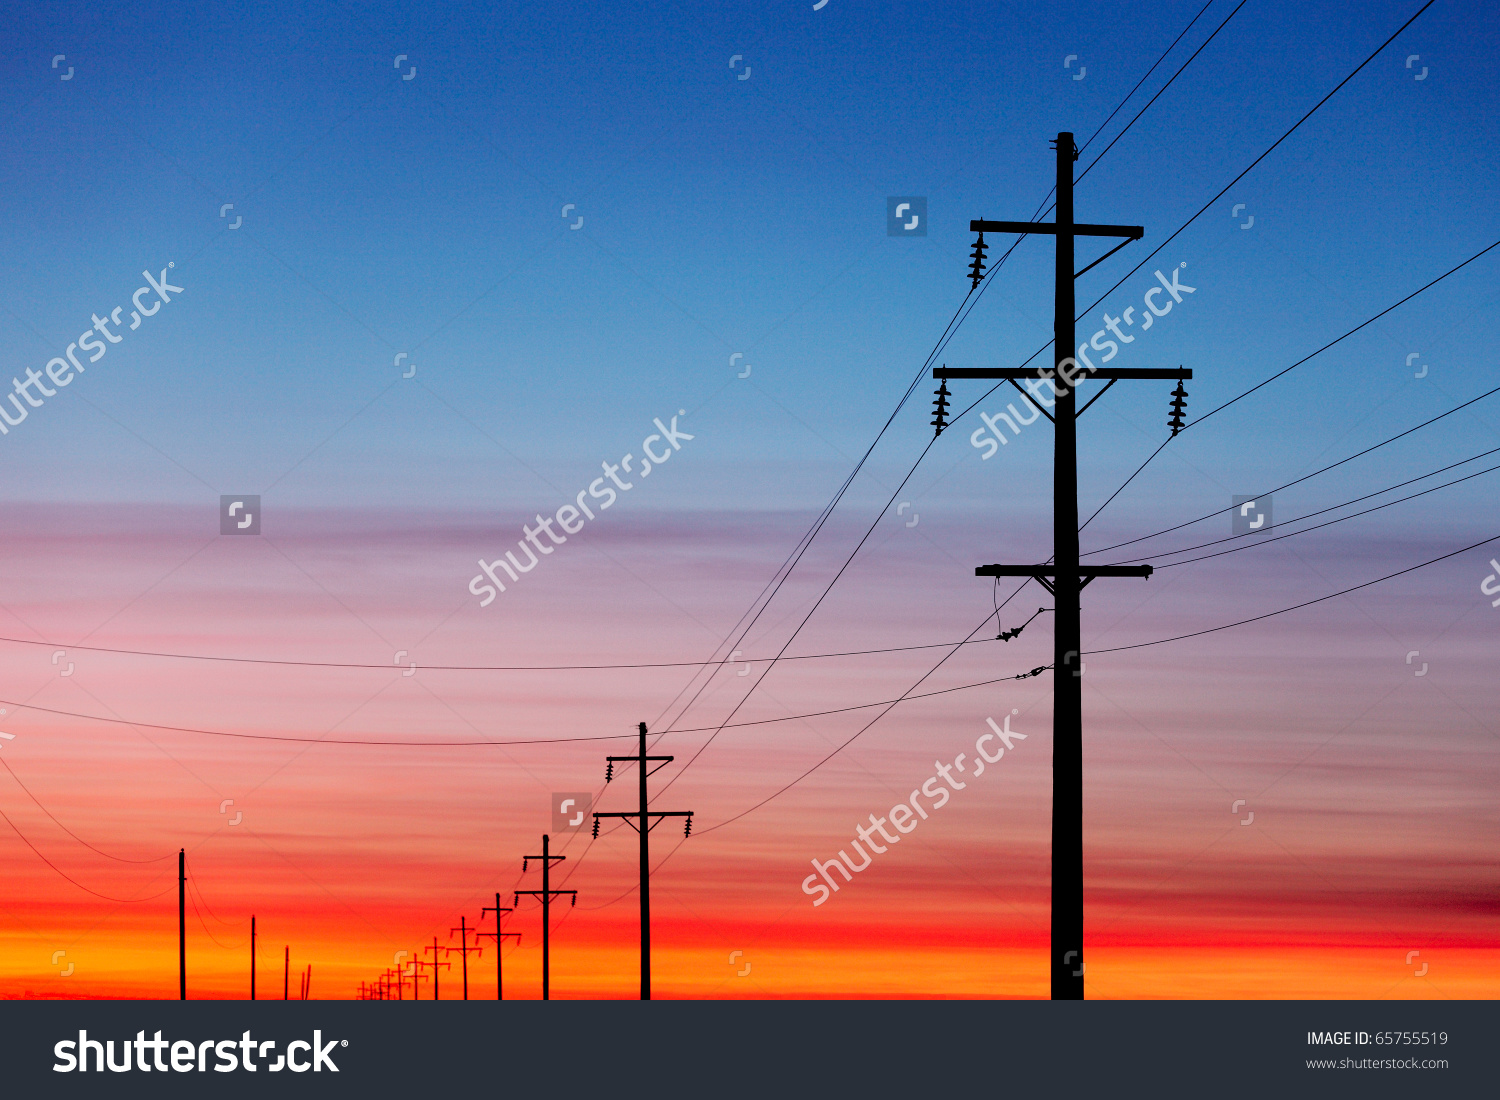 stock-photo-a-silhouette-of-high-voltage-power-lines-against-a-dramatic-and-colorful-sky-at-sunrise-or-sunset-65755519.jpg